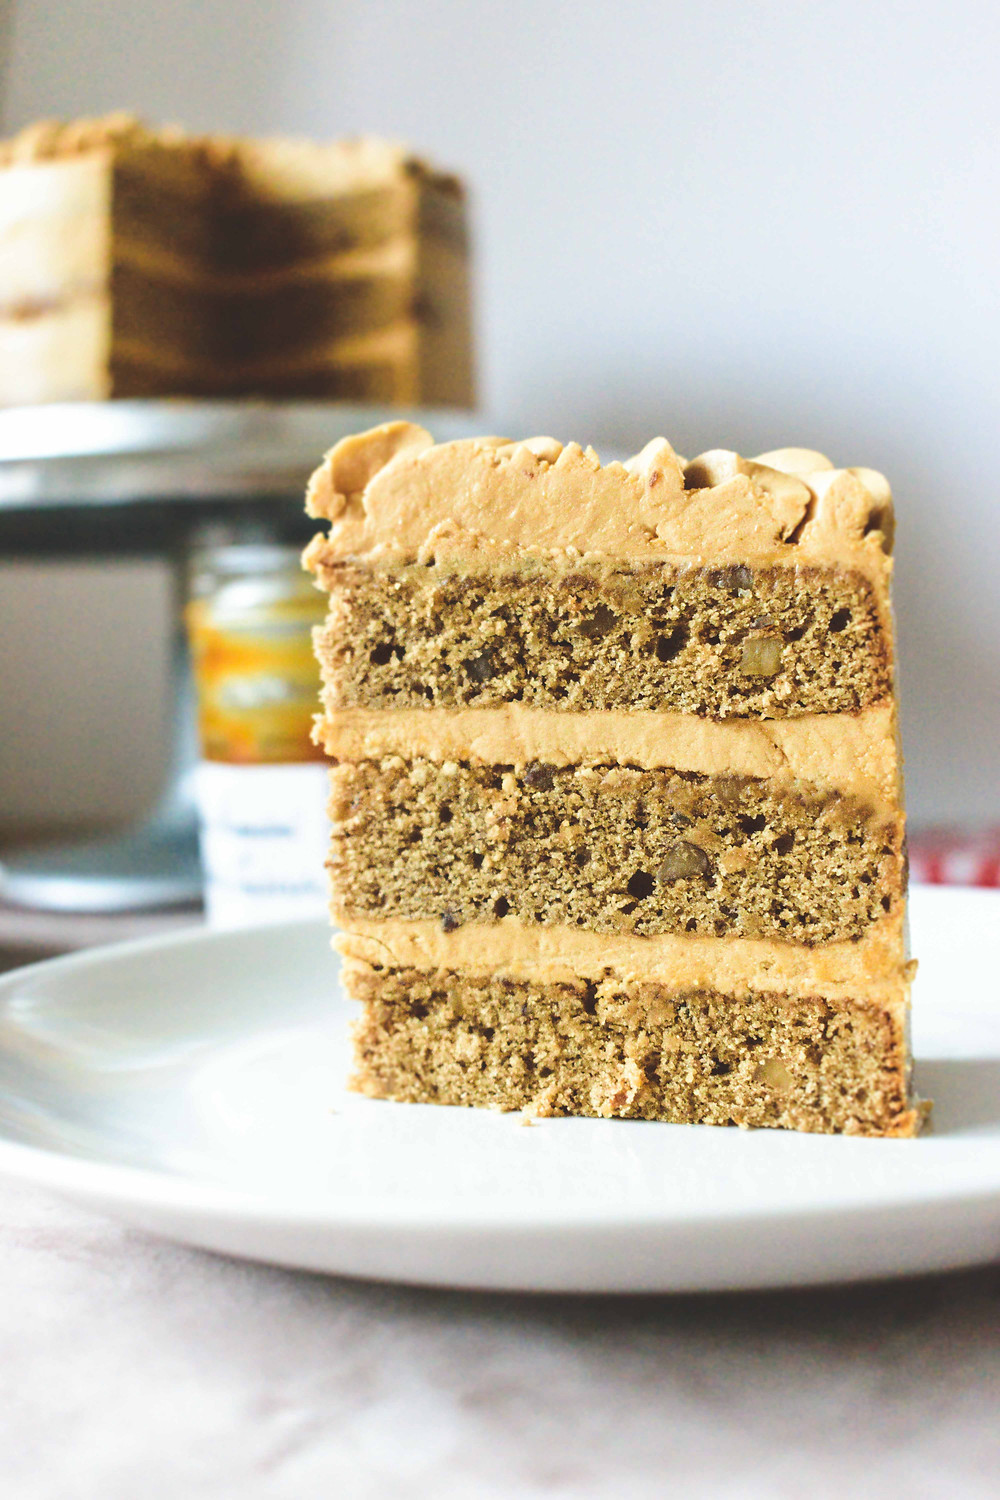 Coffee & Walnut Cake with Coffee-Caramel Buttercream (Gluten-Free)